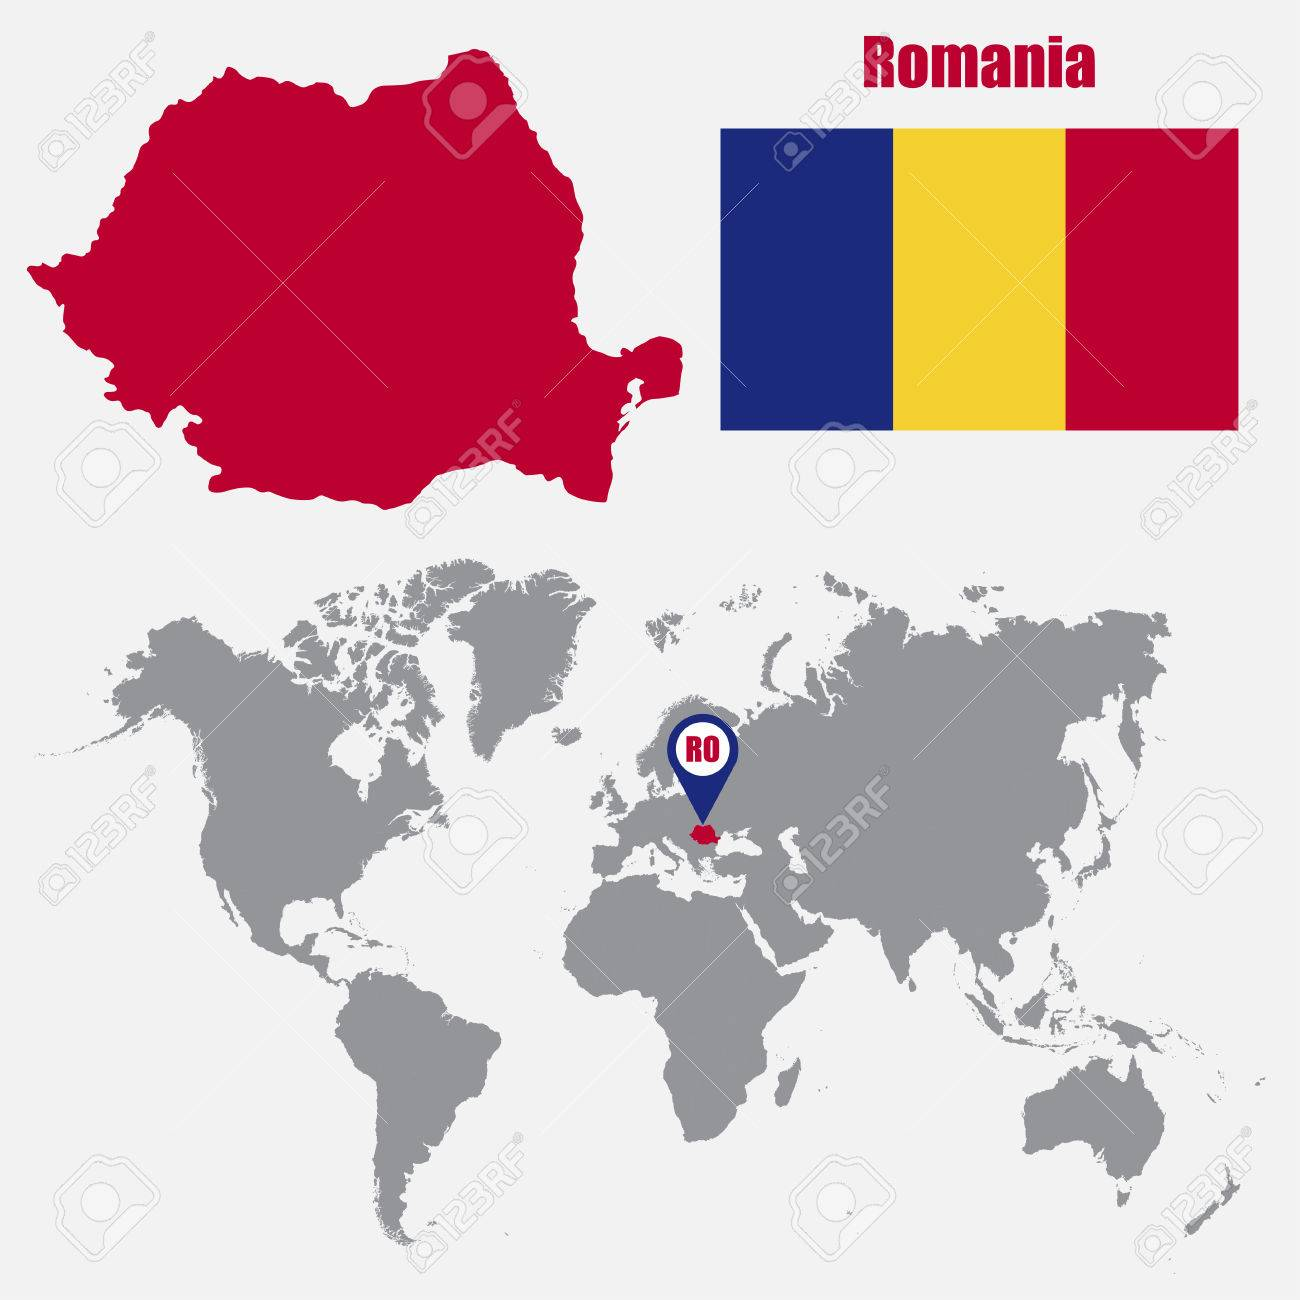 Romania Map On A World Map With Flag And Map Pointer Vector Royalty Free Cliparts Vectors And Stock Illustration Image 61567254